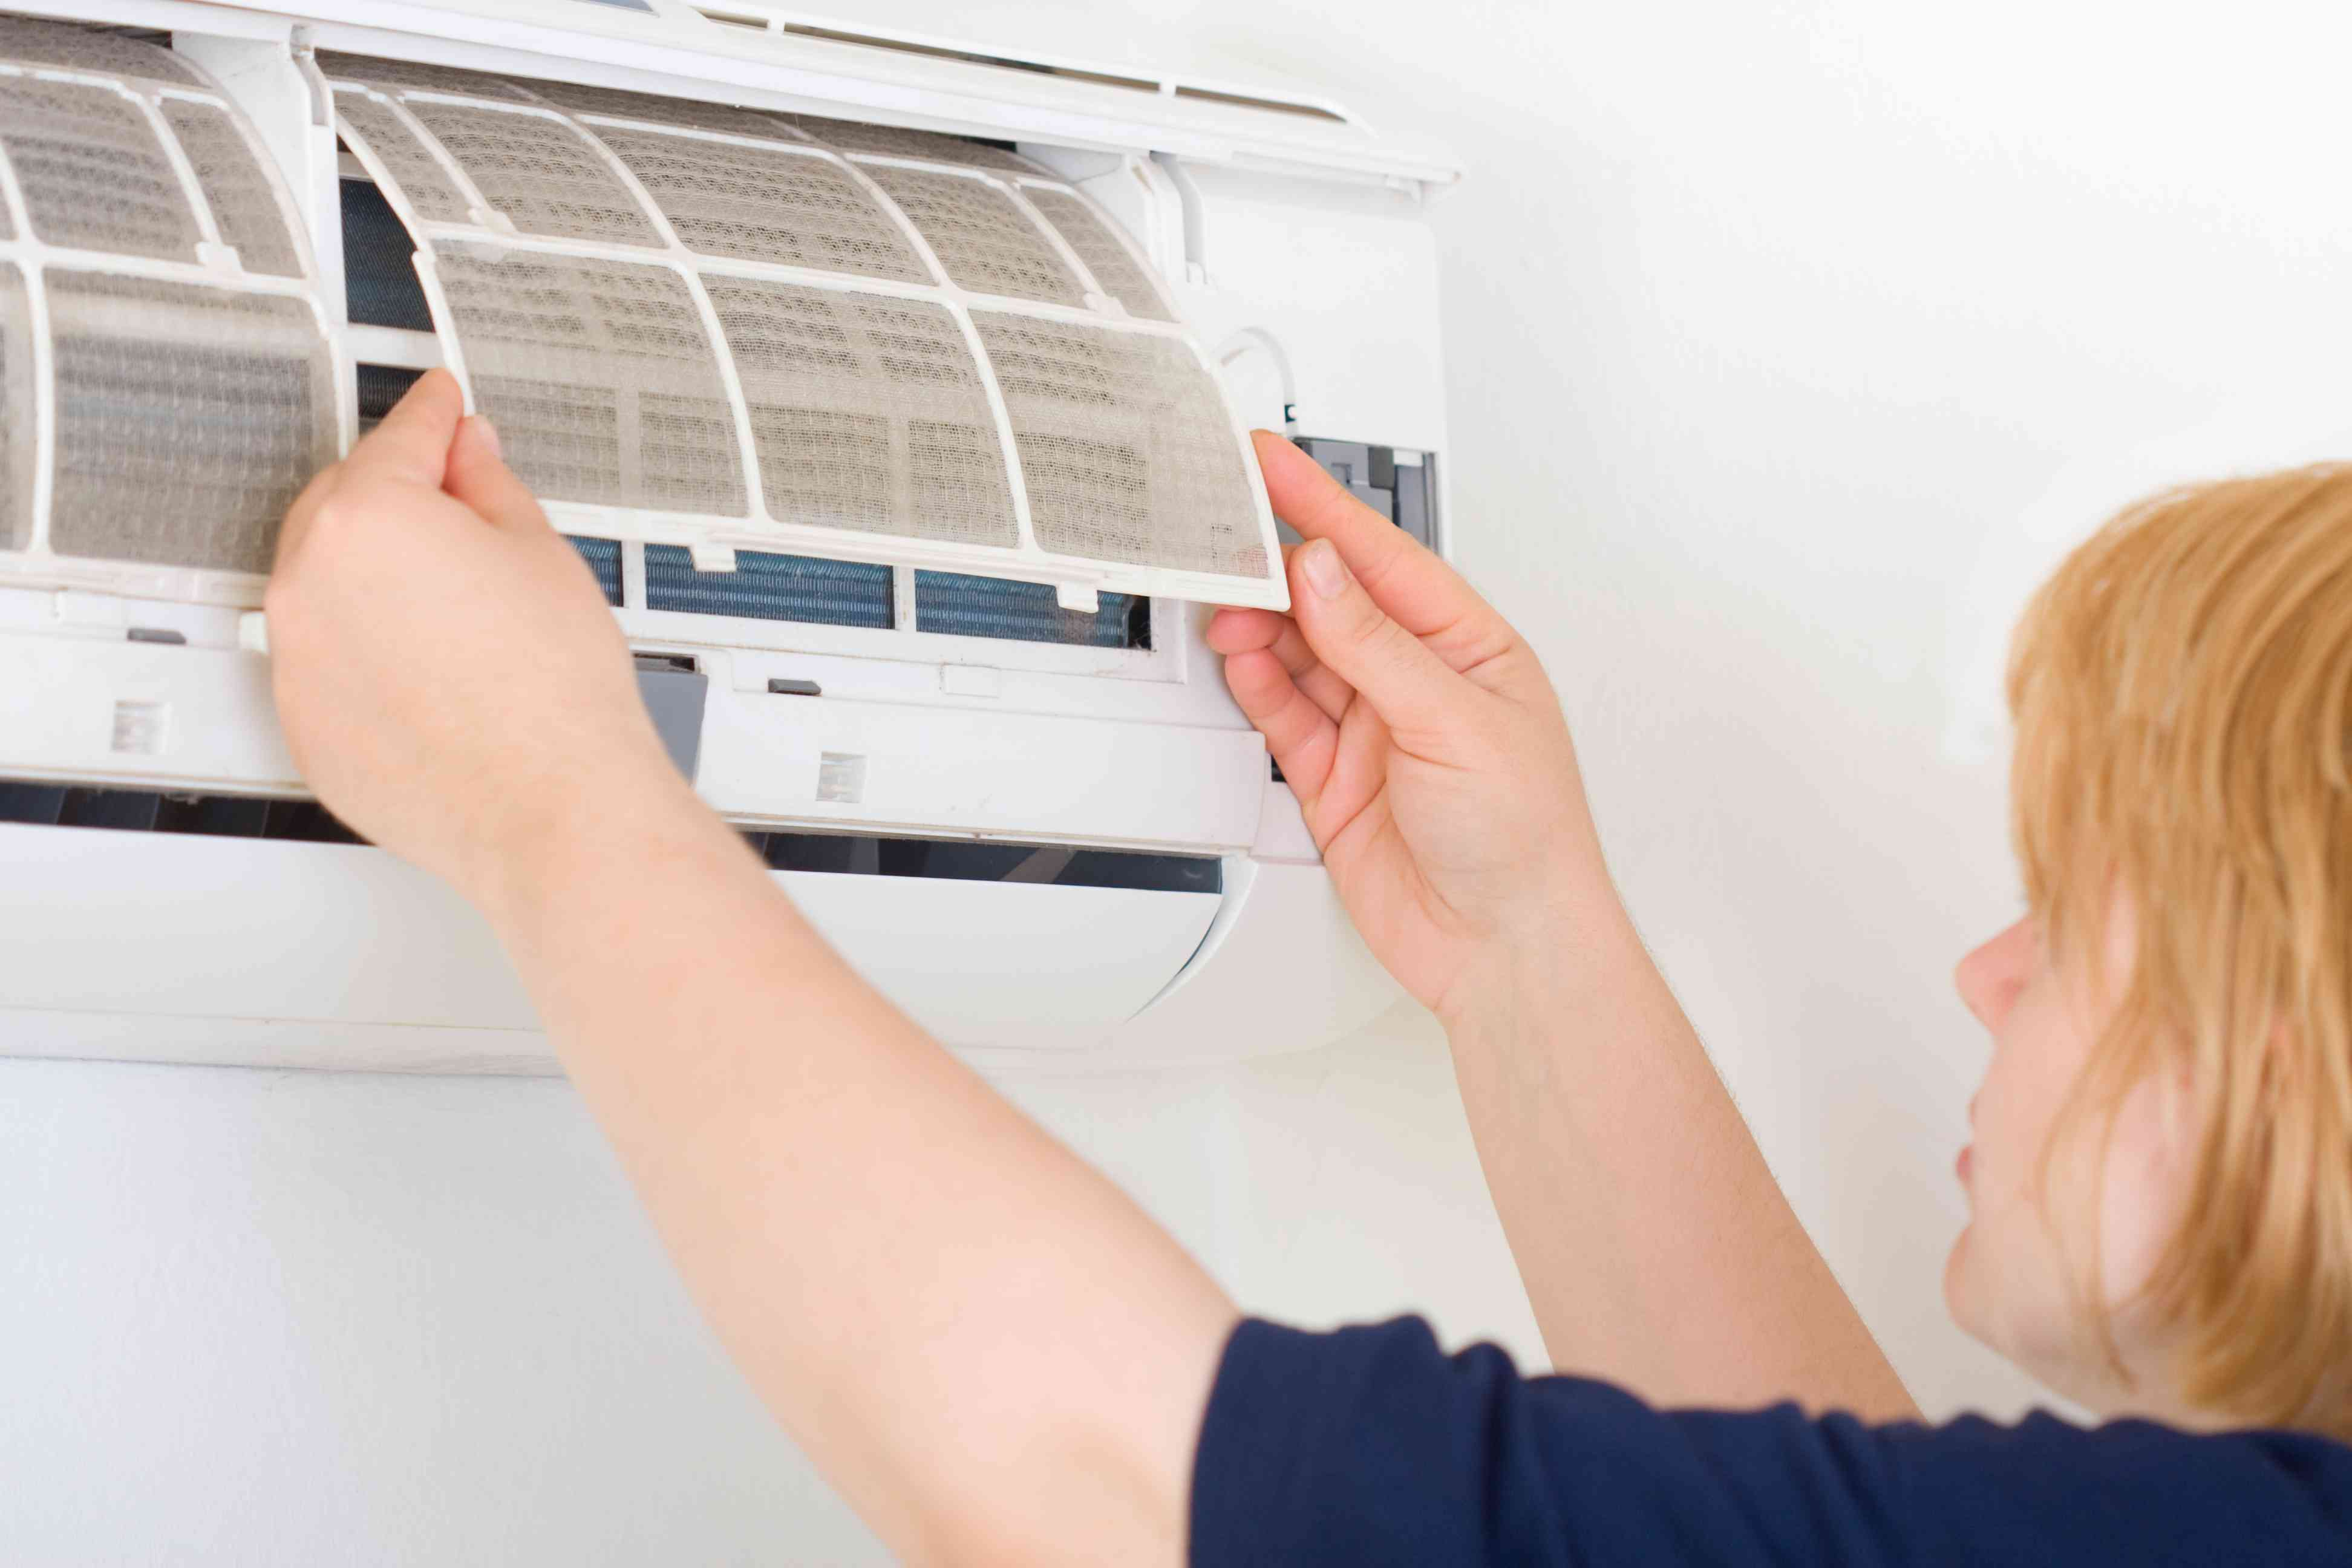 Woman Replacing an Air Filter in a Home